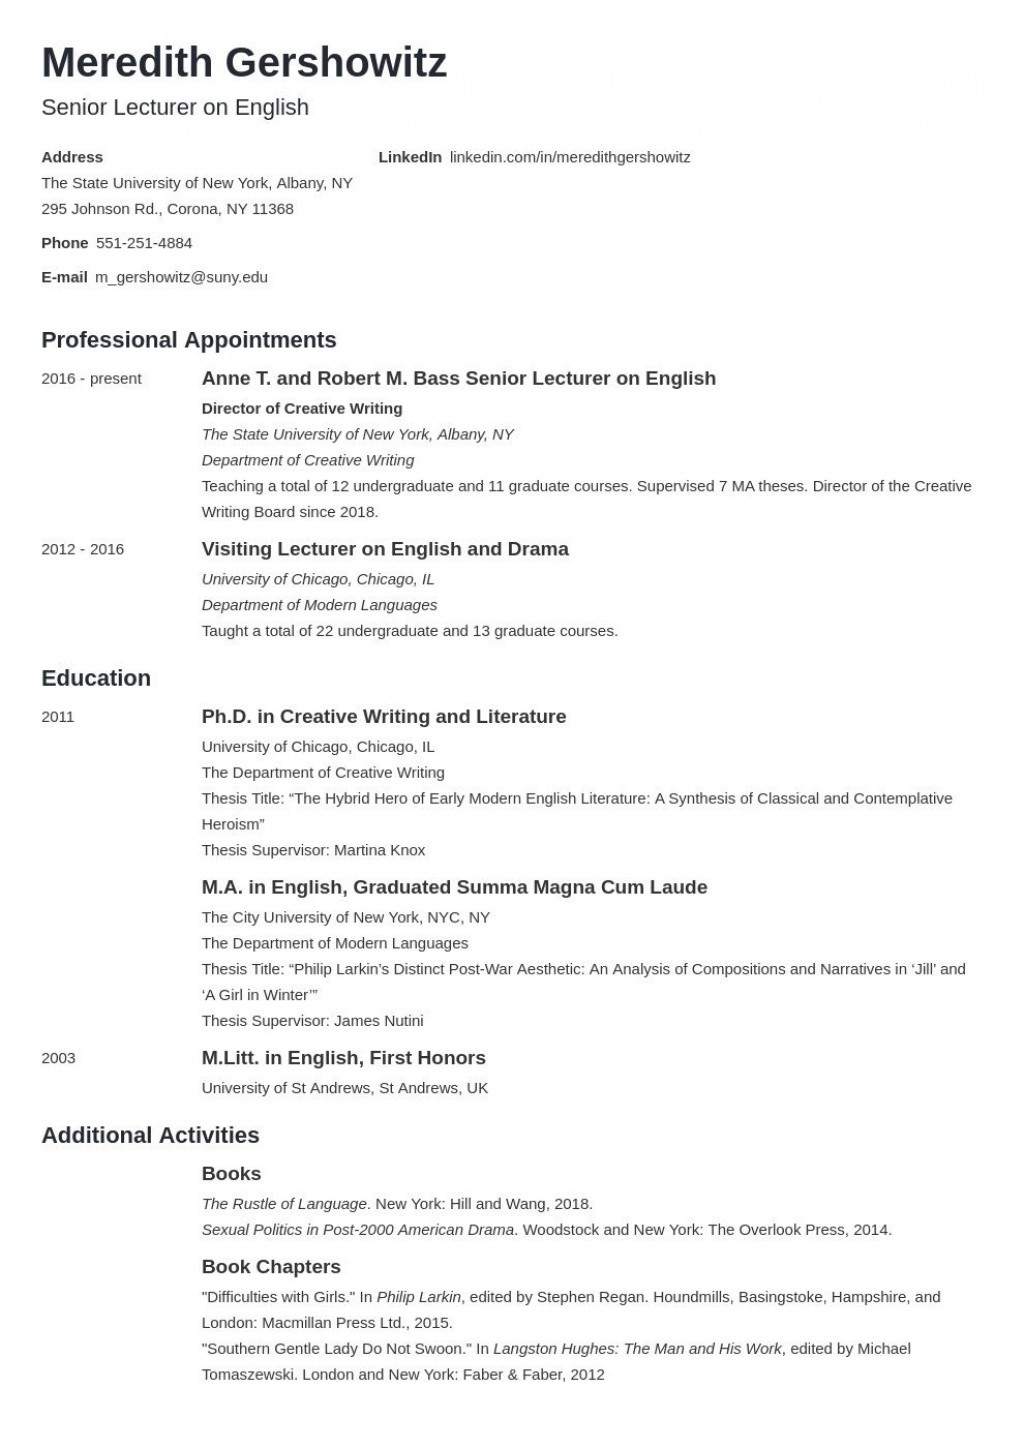 005 Fearsome Curriculum Vitae Template Student Example  Sample College Undergraduate For Research PaperLarge